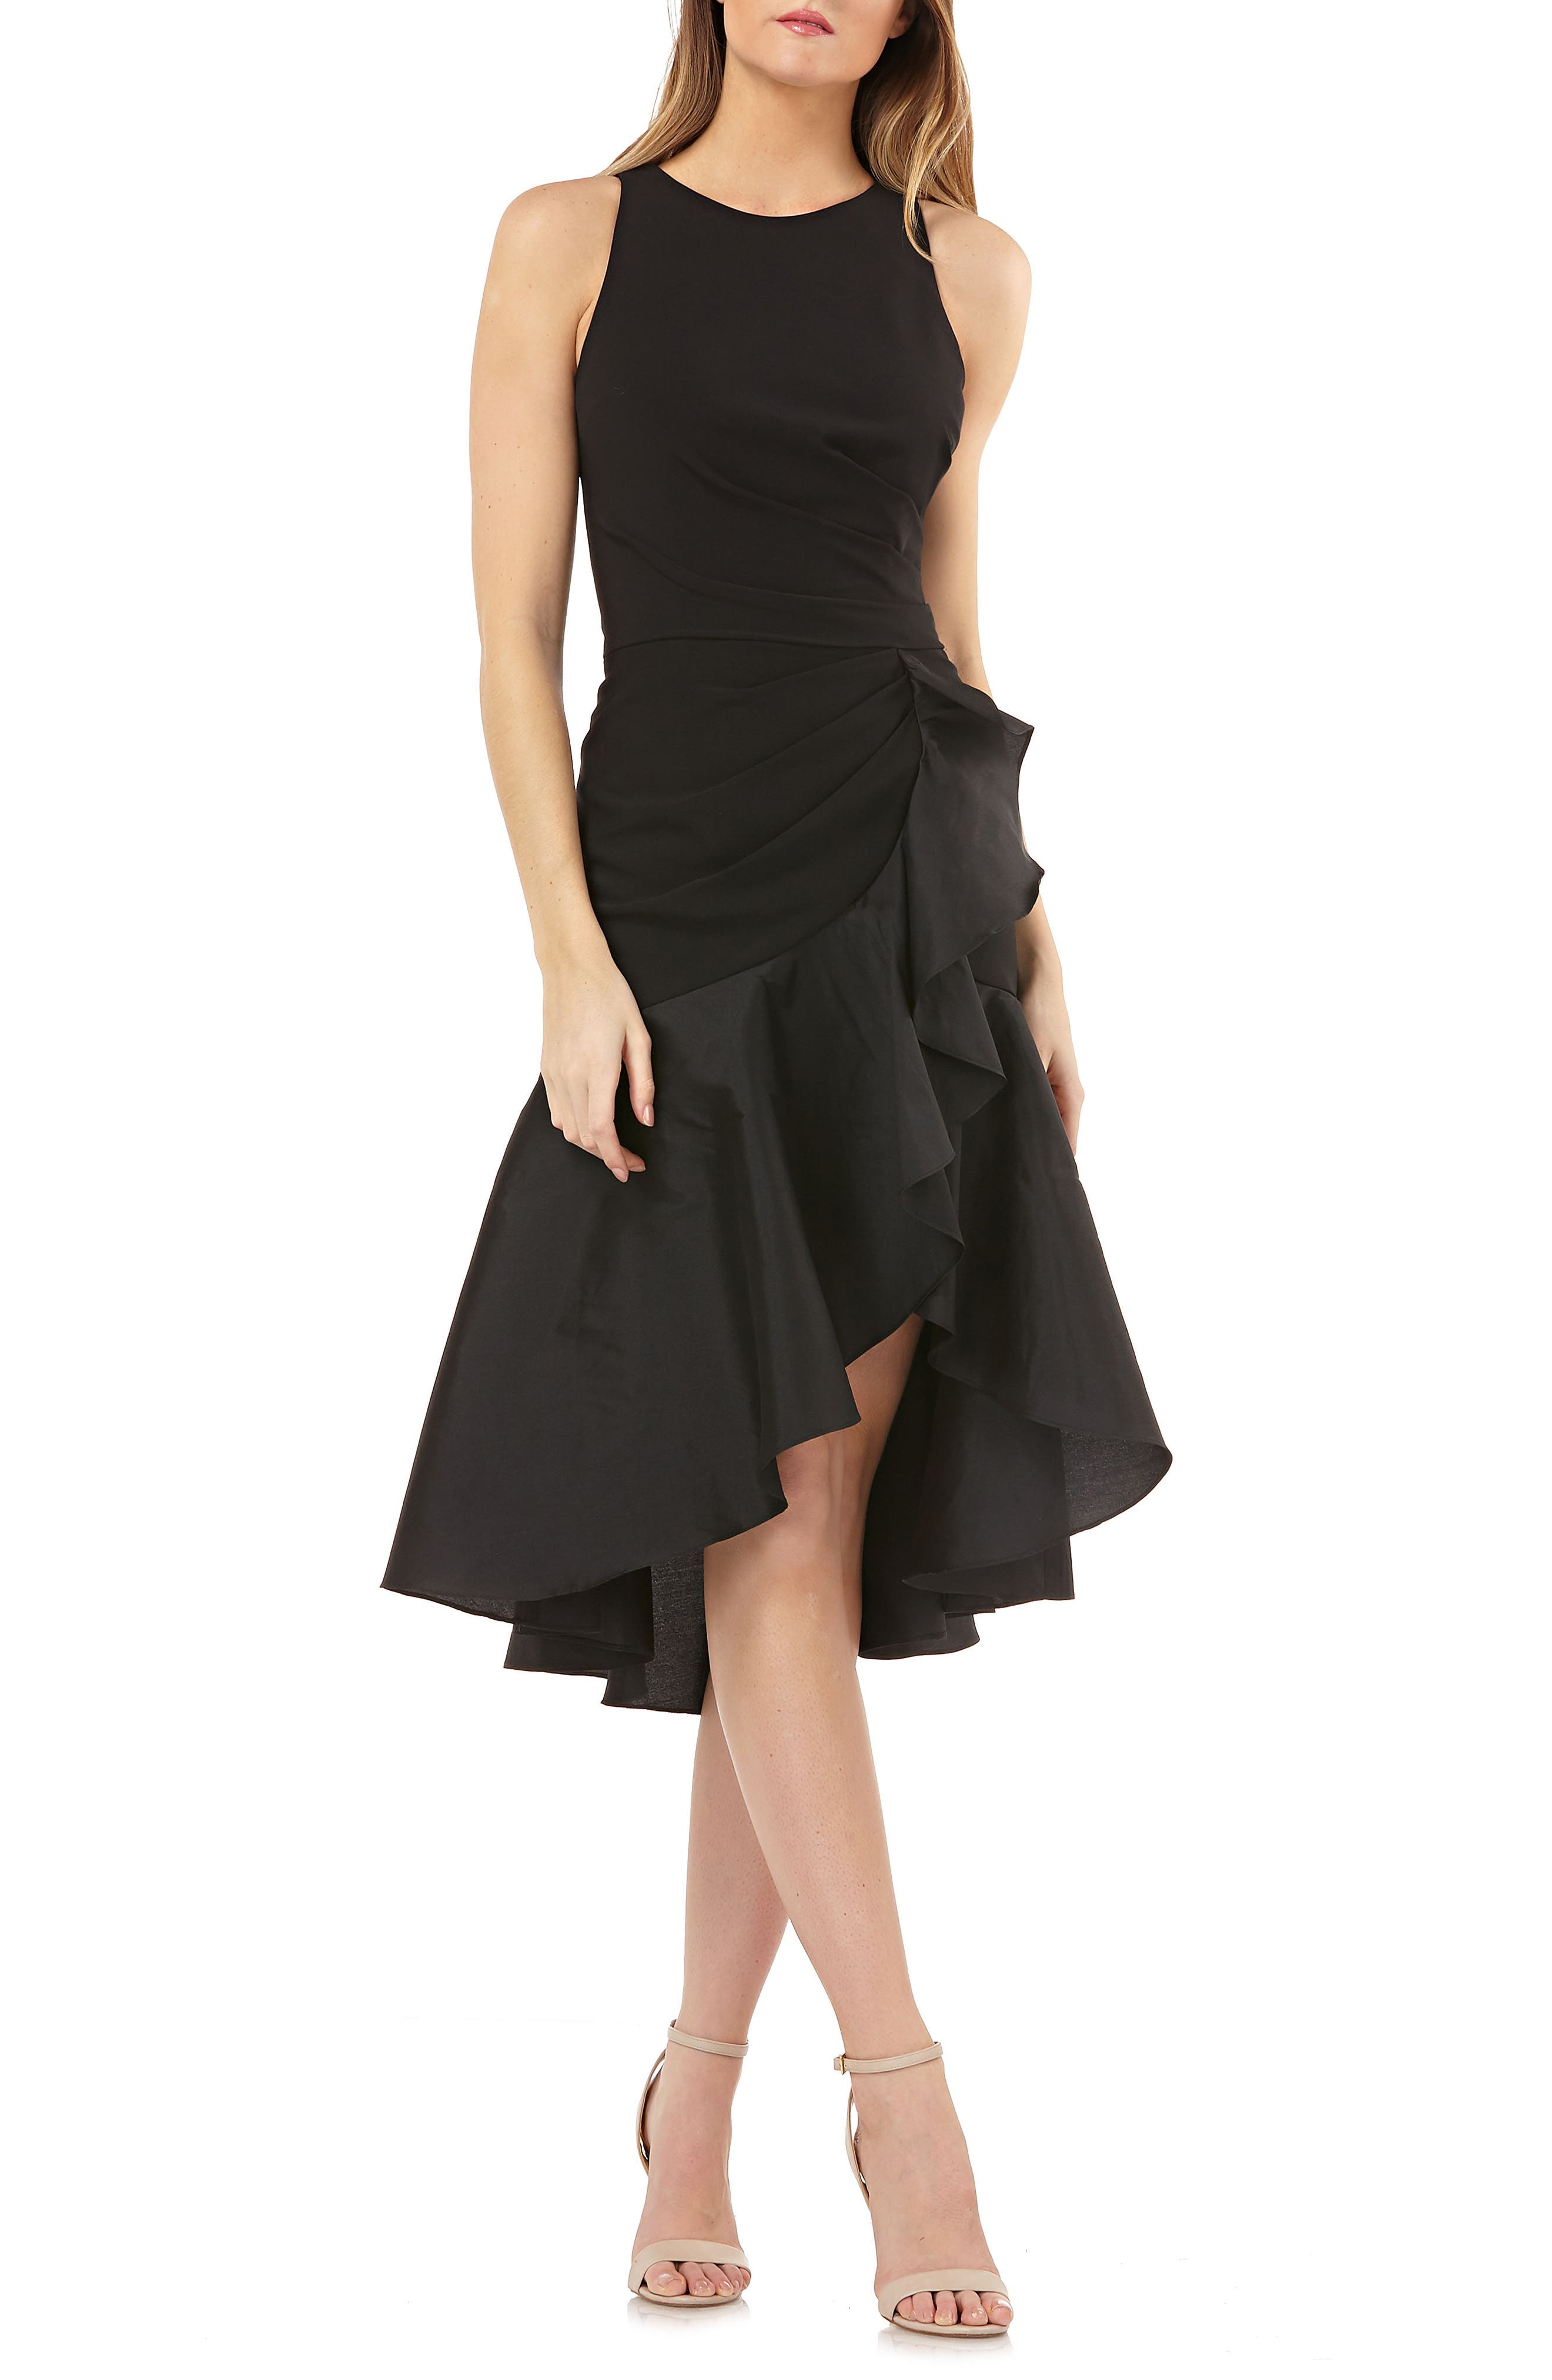 Crepe Contrast Ruffle Cocktail Dress,                         Main,                         color, Black